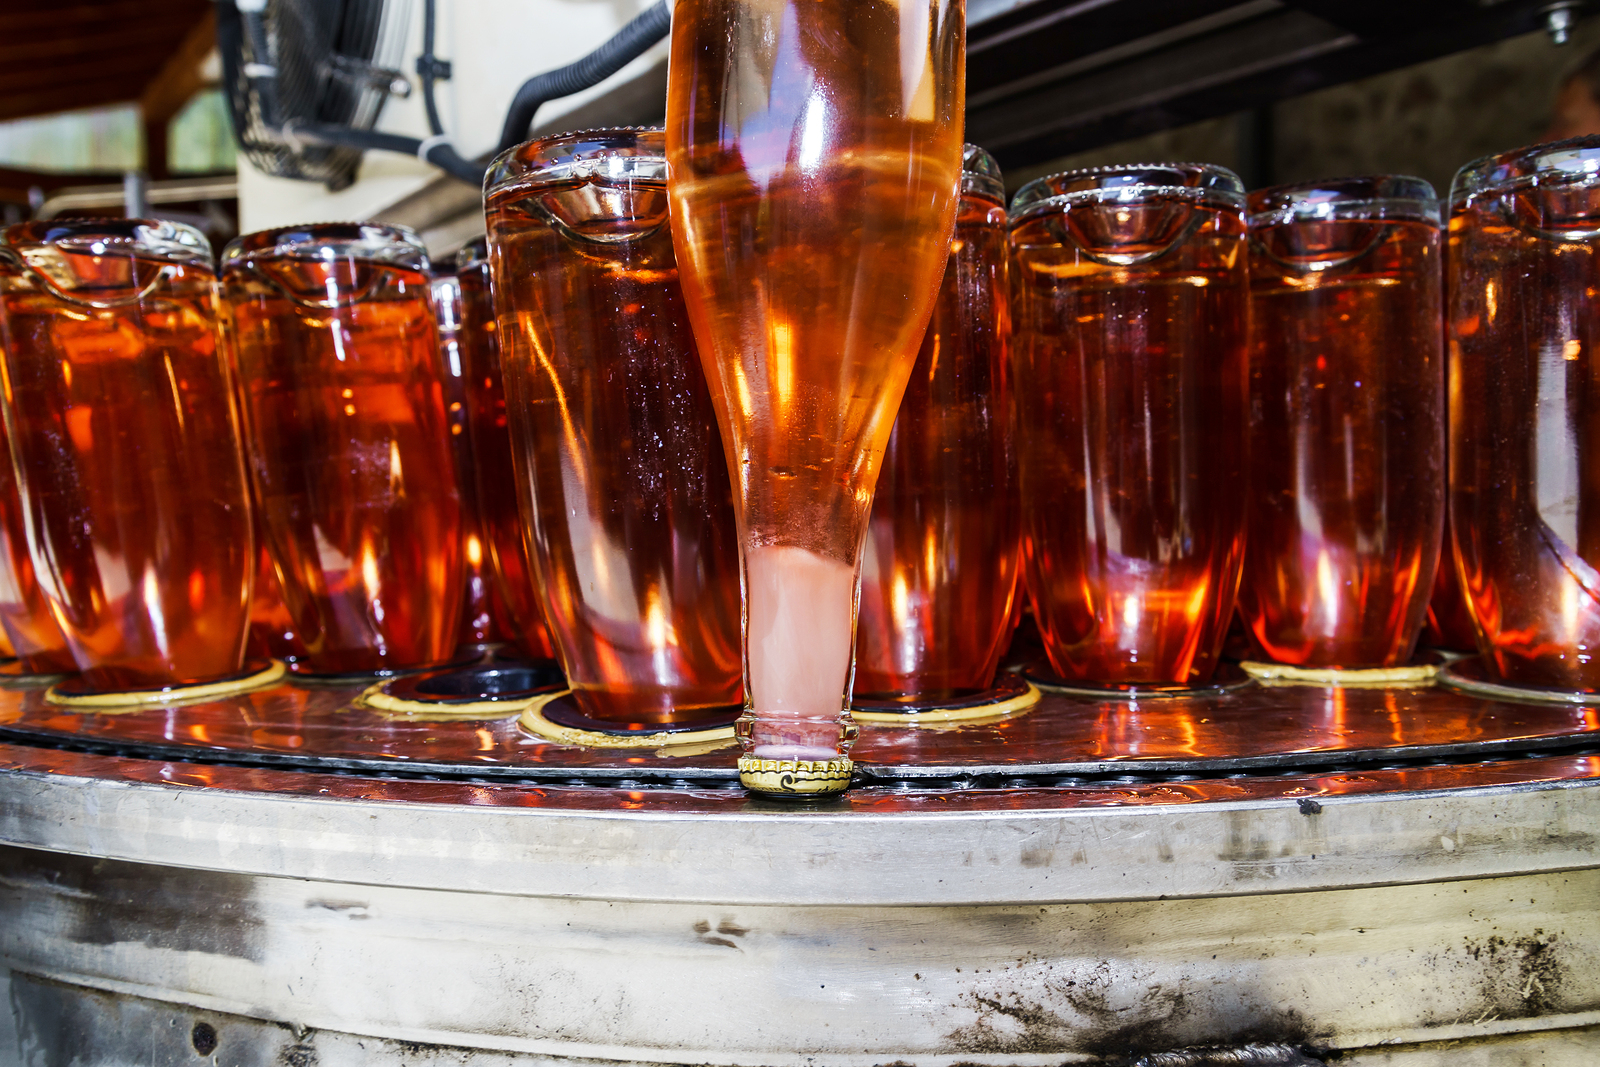 Cremant d'Alsace Rosé is inverted so yeast cells from secondary fermentation can be frozen in place before disgorgement.